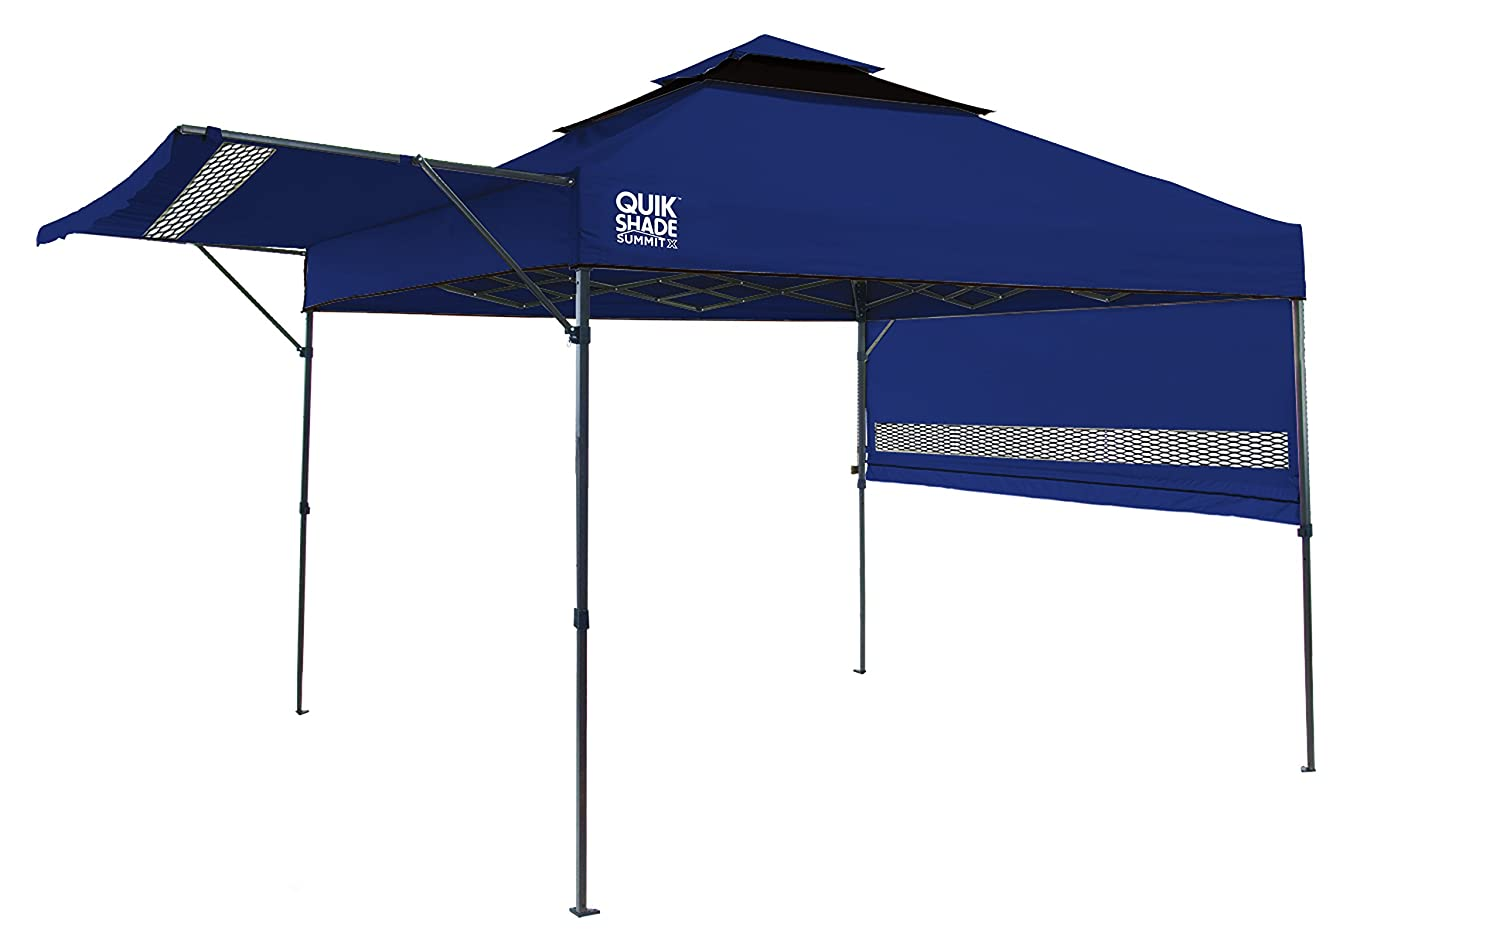 Amazon.com Quik Shade Summit SX170 10u0027x17u0027 Instant Canopy with Adjustable Dual Half Awnings Sports u0026 Outdoors  sc 1 st  Amazon.com & Amazon.com: Quik Shade Summit SX170 10u0027x17u0027 Instant Canopy with ...